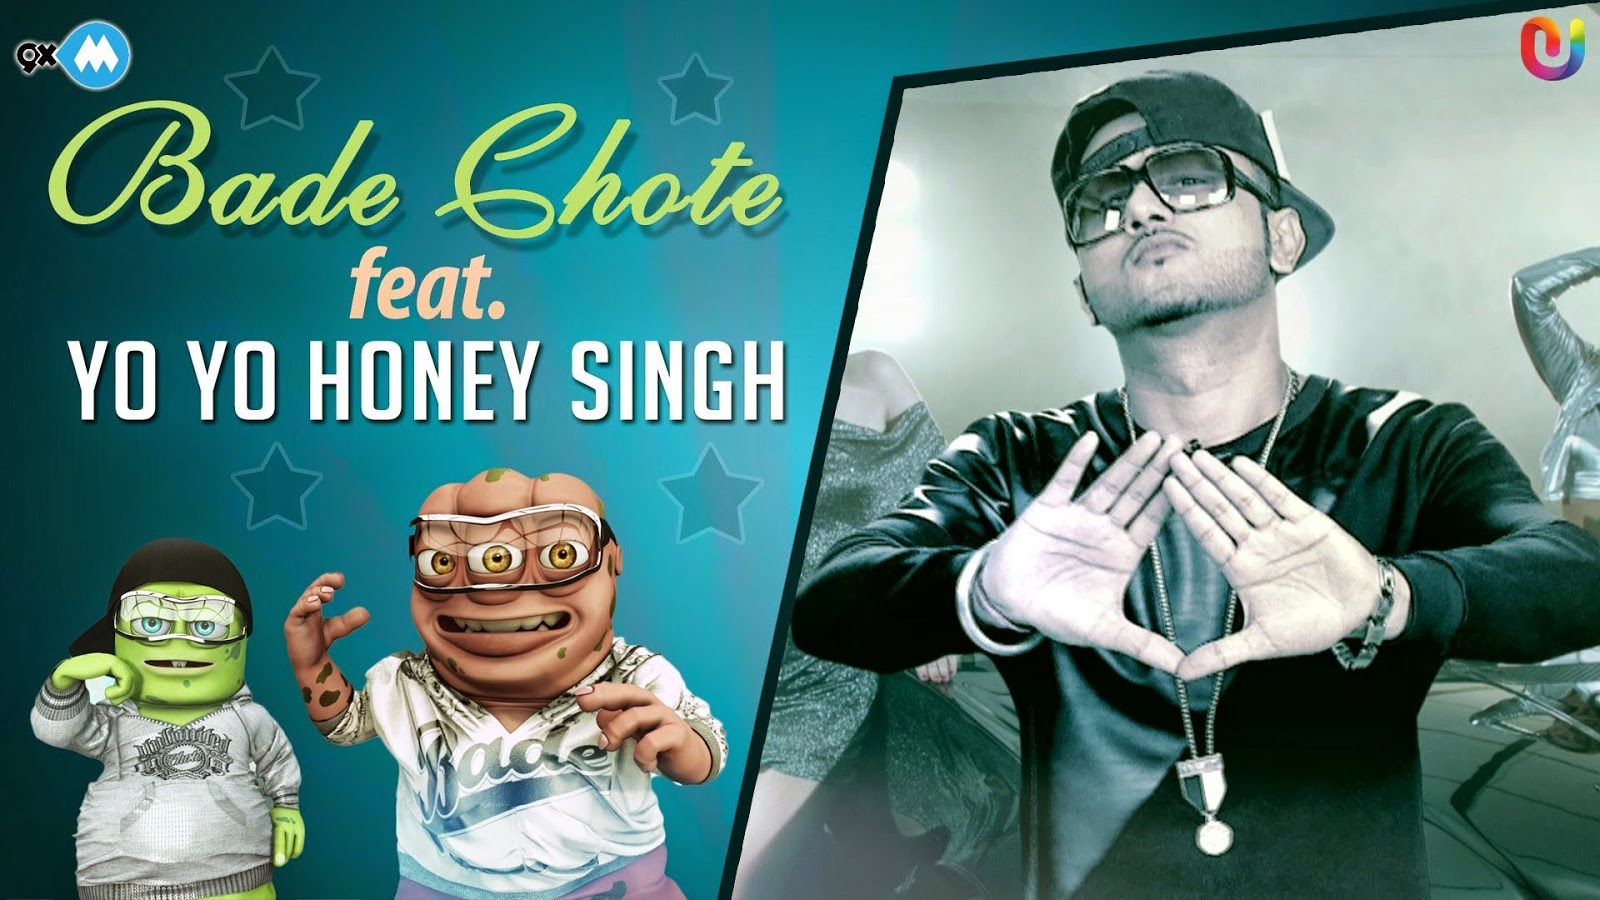 bakwaspan-song-lyrics-yo-yo-honey-singh-bade-chote-9xm